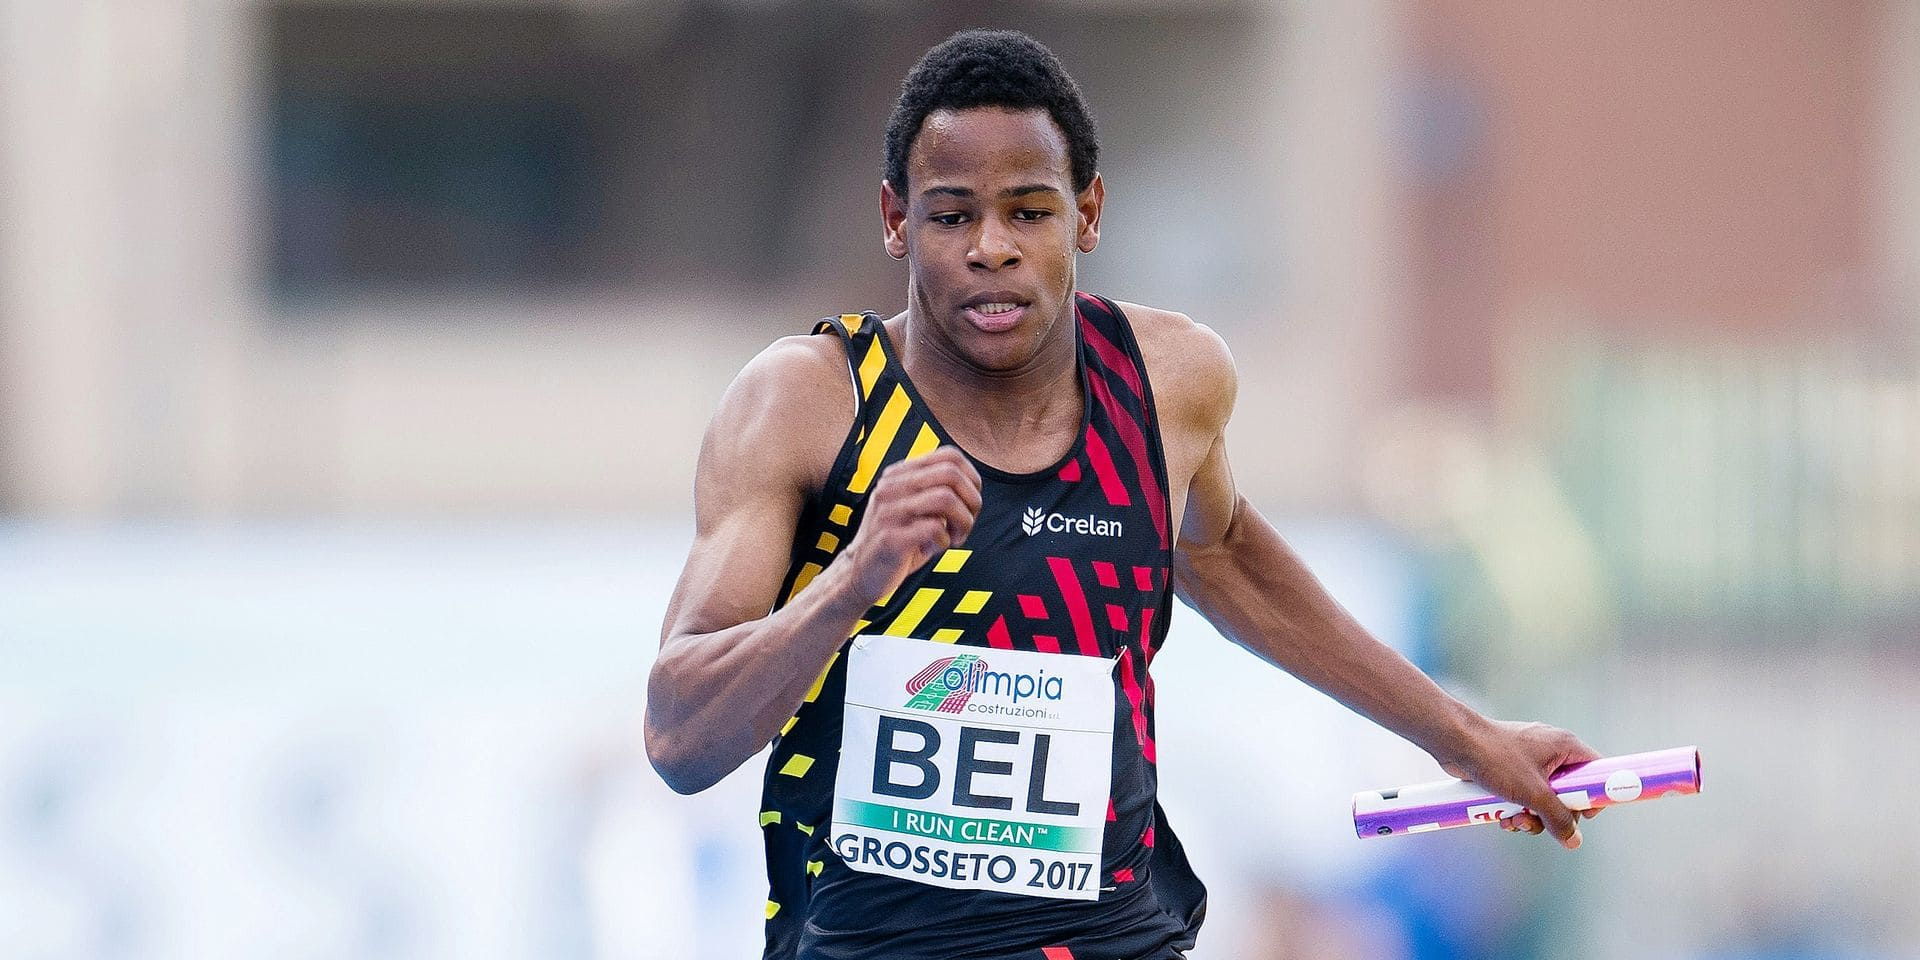 Belgian Raphael Kapenda pictured in action during the men's 4x100m relay on the fourth day of the U20 European Championships Athletics, in Grosseto, Italy, Sunday 23 July 2017. This year, the biyearly Championships for athletes who are 19 years old or younger are taking place from 20 to 23 July. BELGA PHOTO JASPER JACOBS